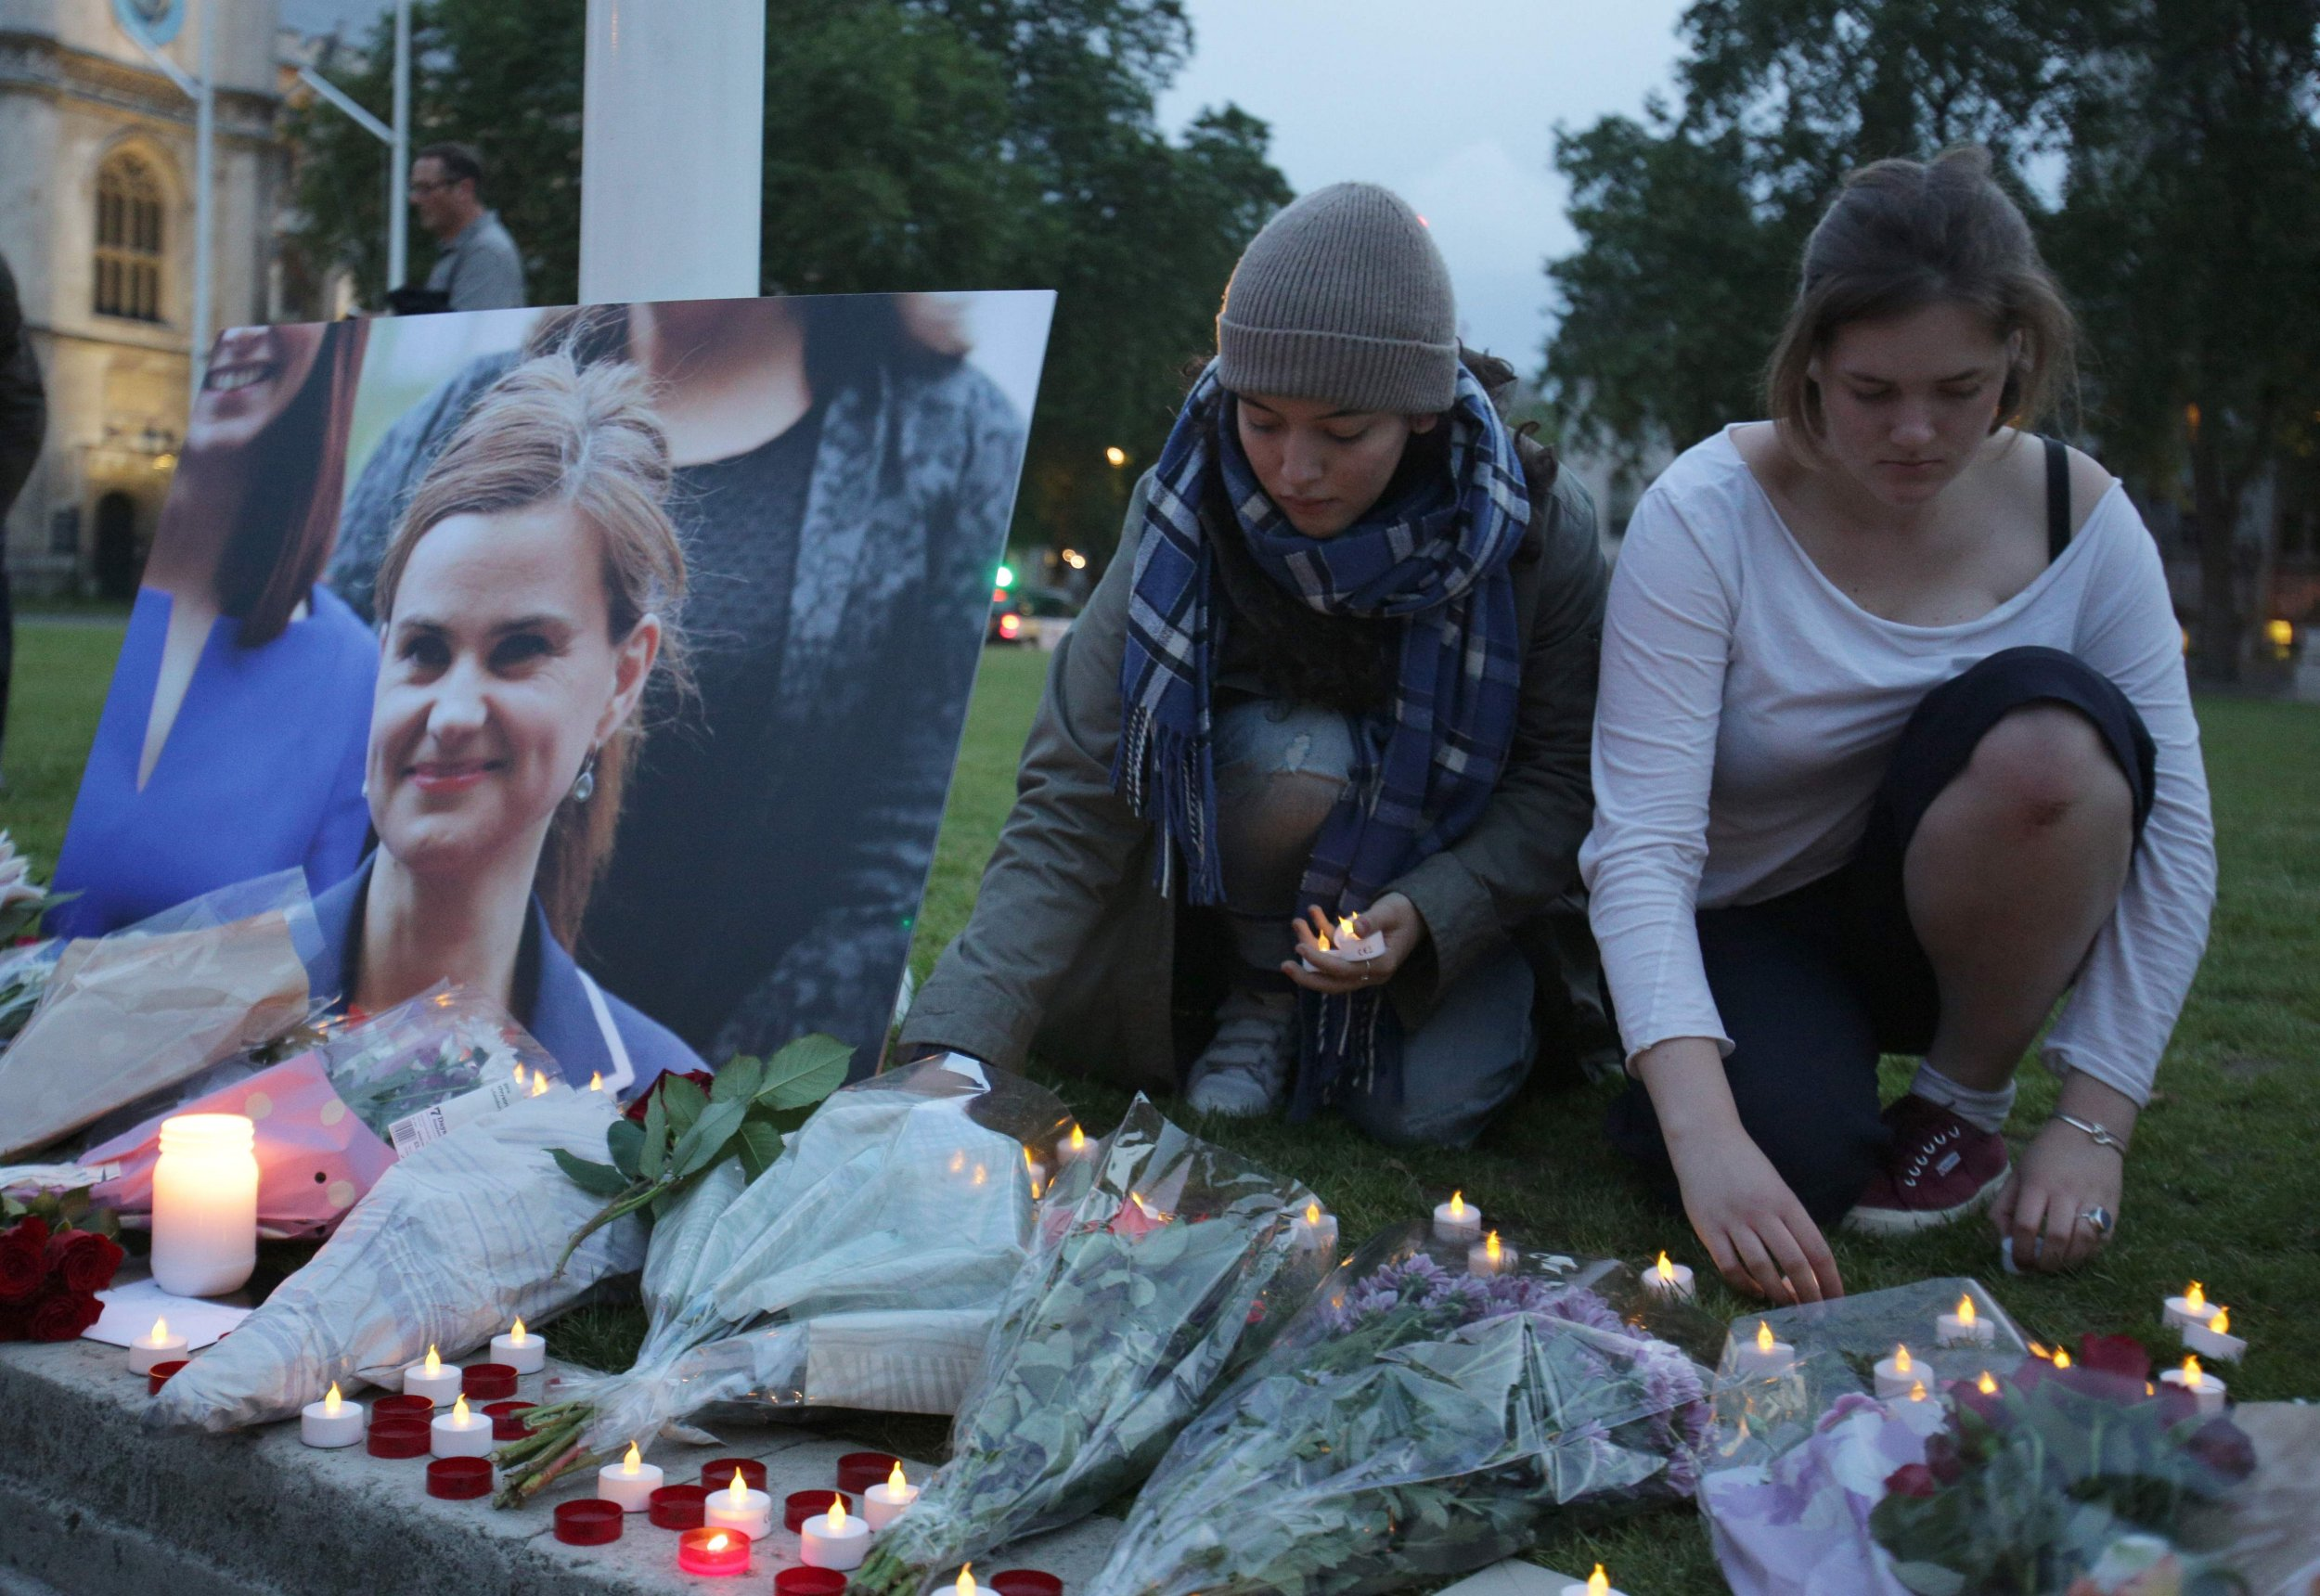 Floral tributes and candles are placed by a picture of slain Labour MP Jo Cox at a vigil in Parliament square in London on June 16, 2016. Cox died today after a shock daylight street attack, throwing campaigning for the referendum on Britain's membership of the European Union into disarray just a week before the crucial vote. / AFP PHOTO / DANIEL LEAL-OLIVASDANIEL LEAL-OLIVAS/AFP/Getty Images